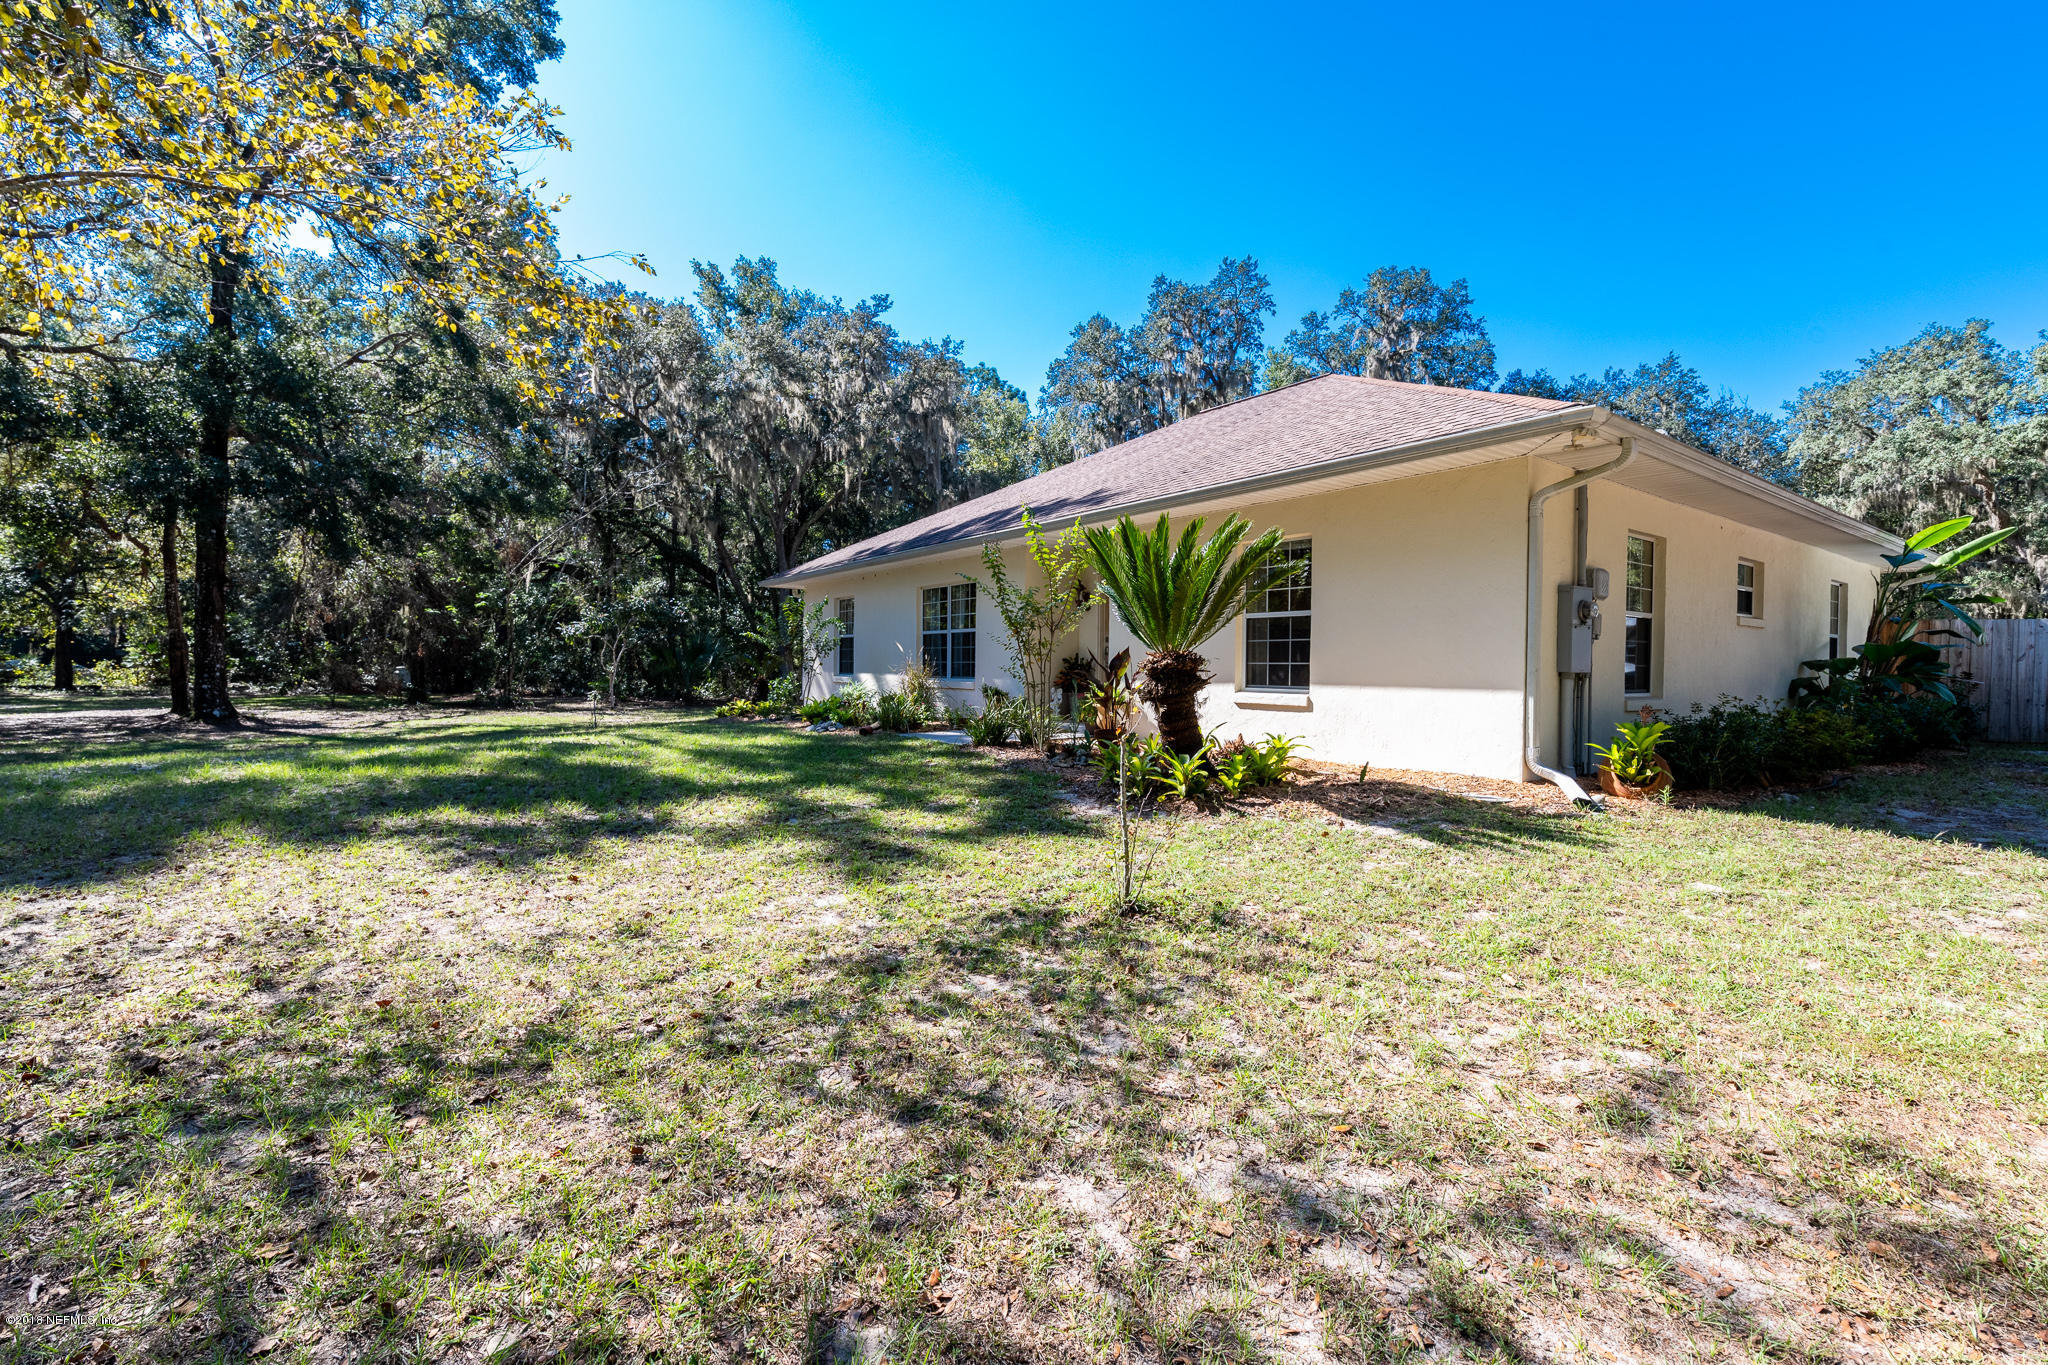 113 SHADY OAK, SATSUMA, FLORIDA 32189, 3 Bedrooms Bedrooms, ,2 BathroomsBathrooms,Residential - single family,For sale,SHADY OAK,953064